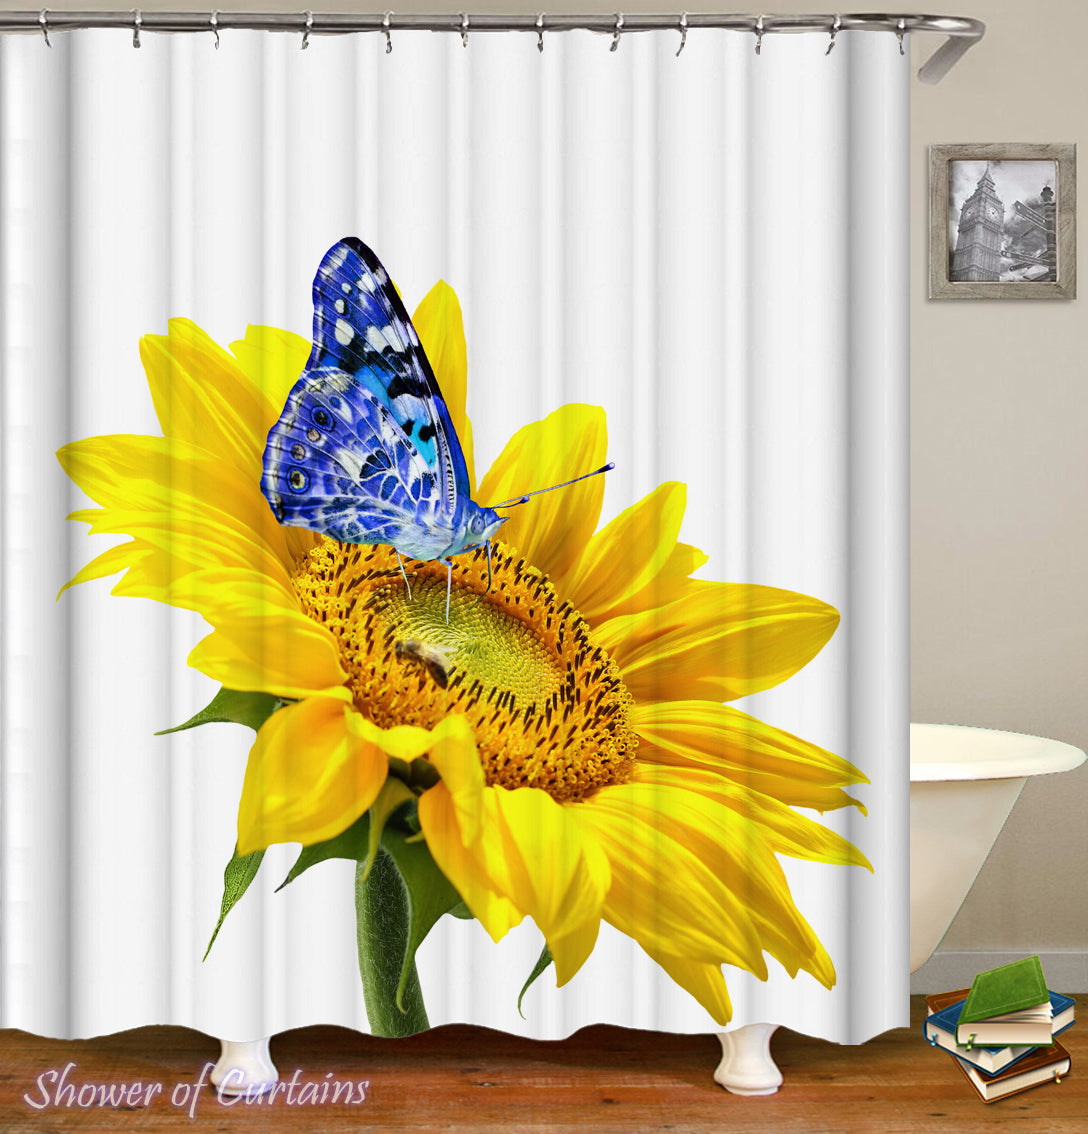 Blue Against Yellow Sunflower Shower Curtain